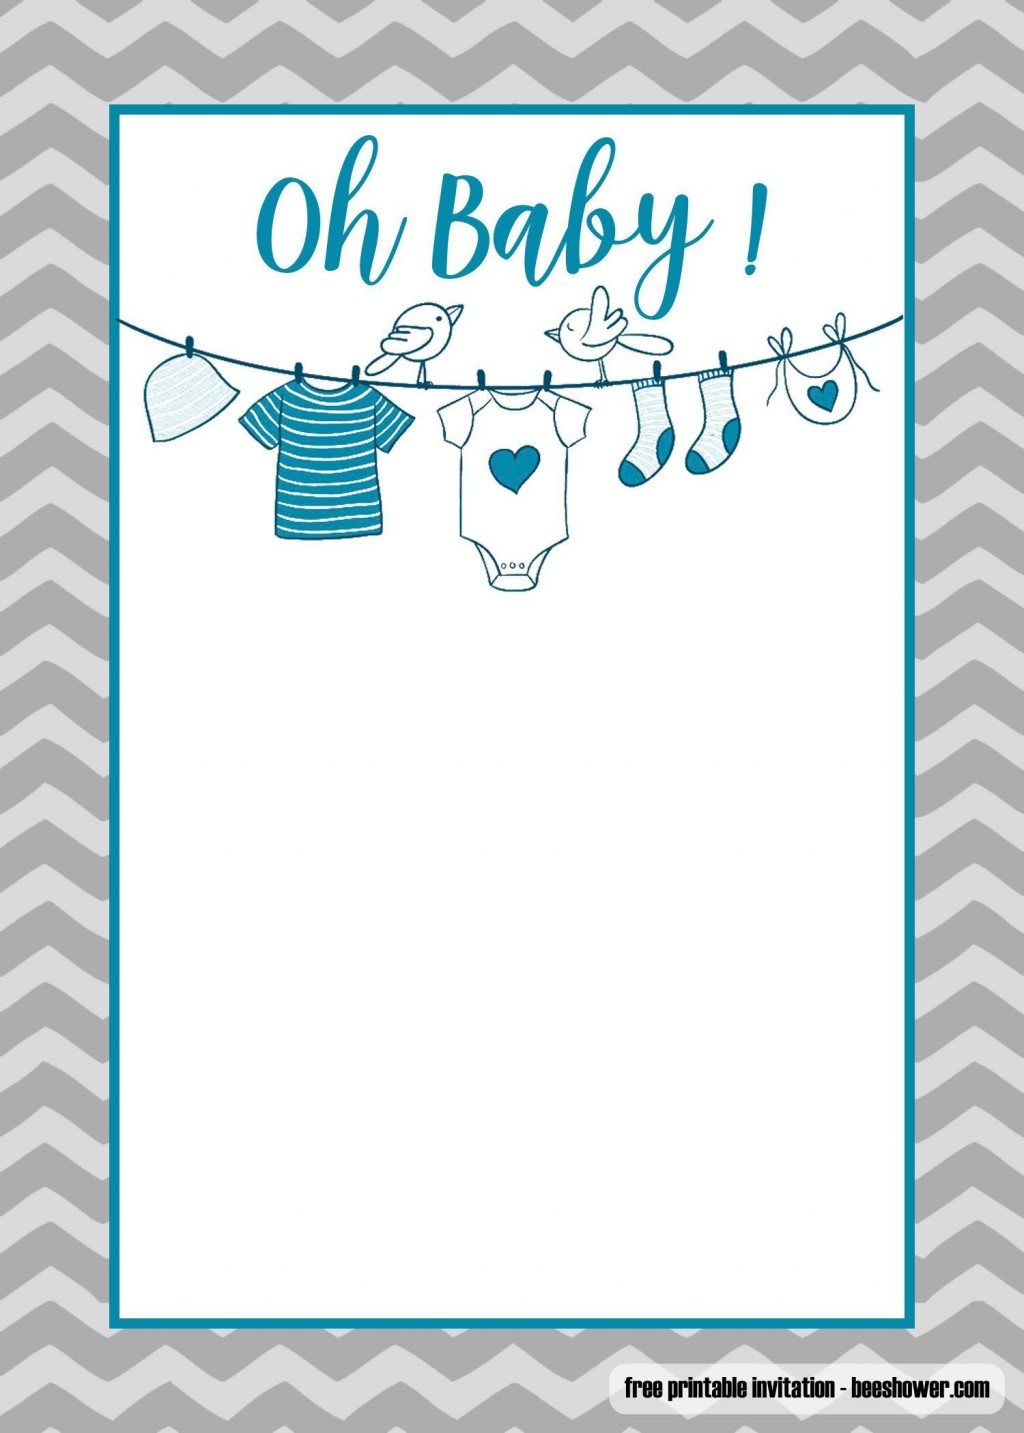 007 Formidable Baby Shower Card Template Free Download Highest Quality  Indian InvitationLarge